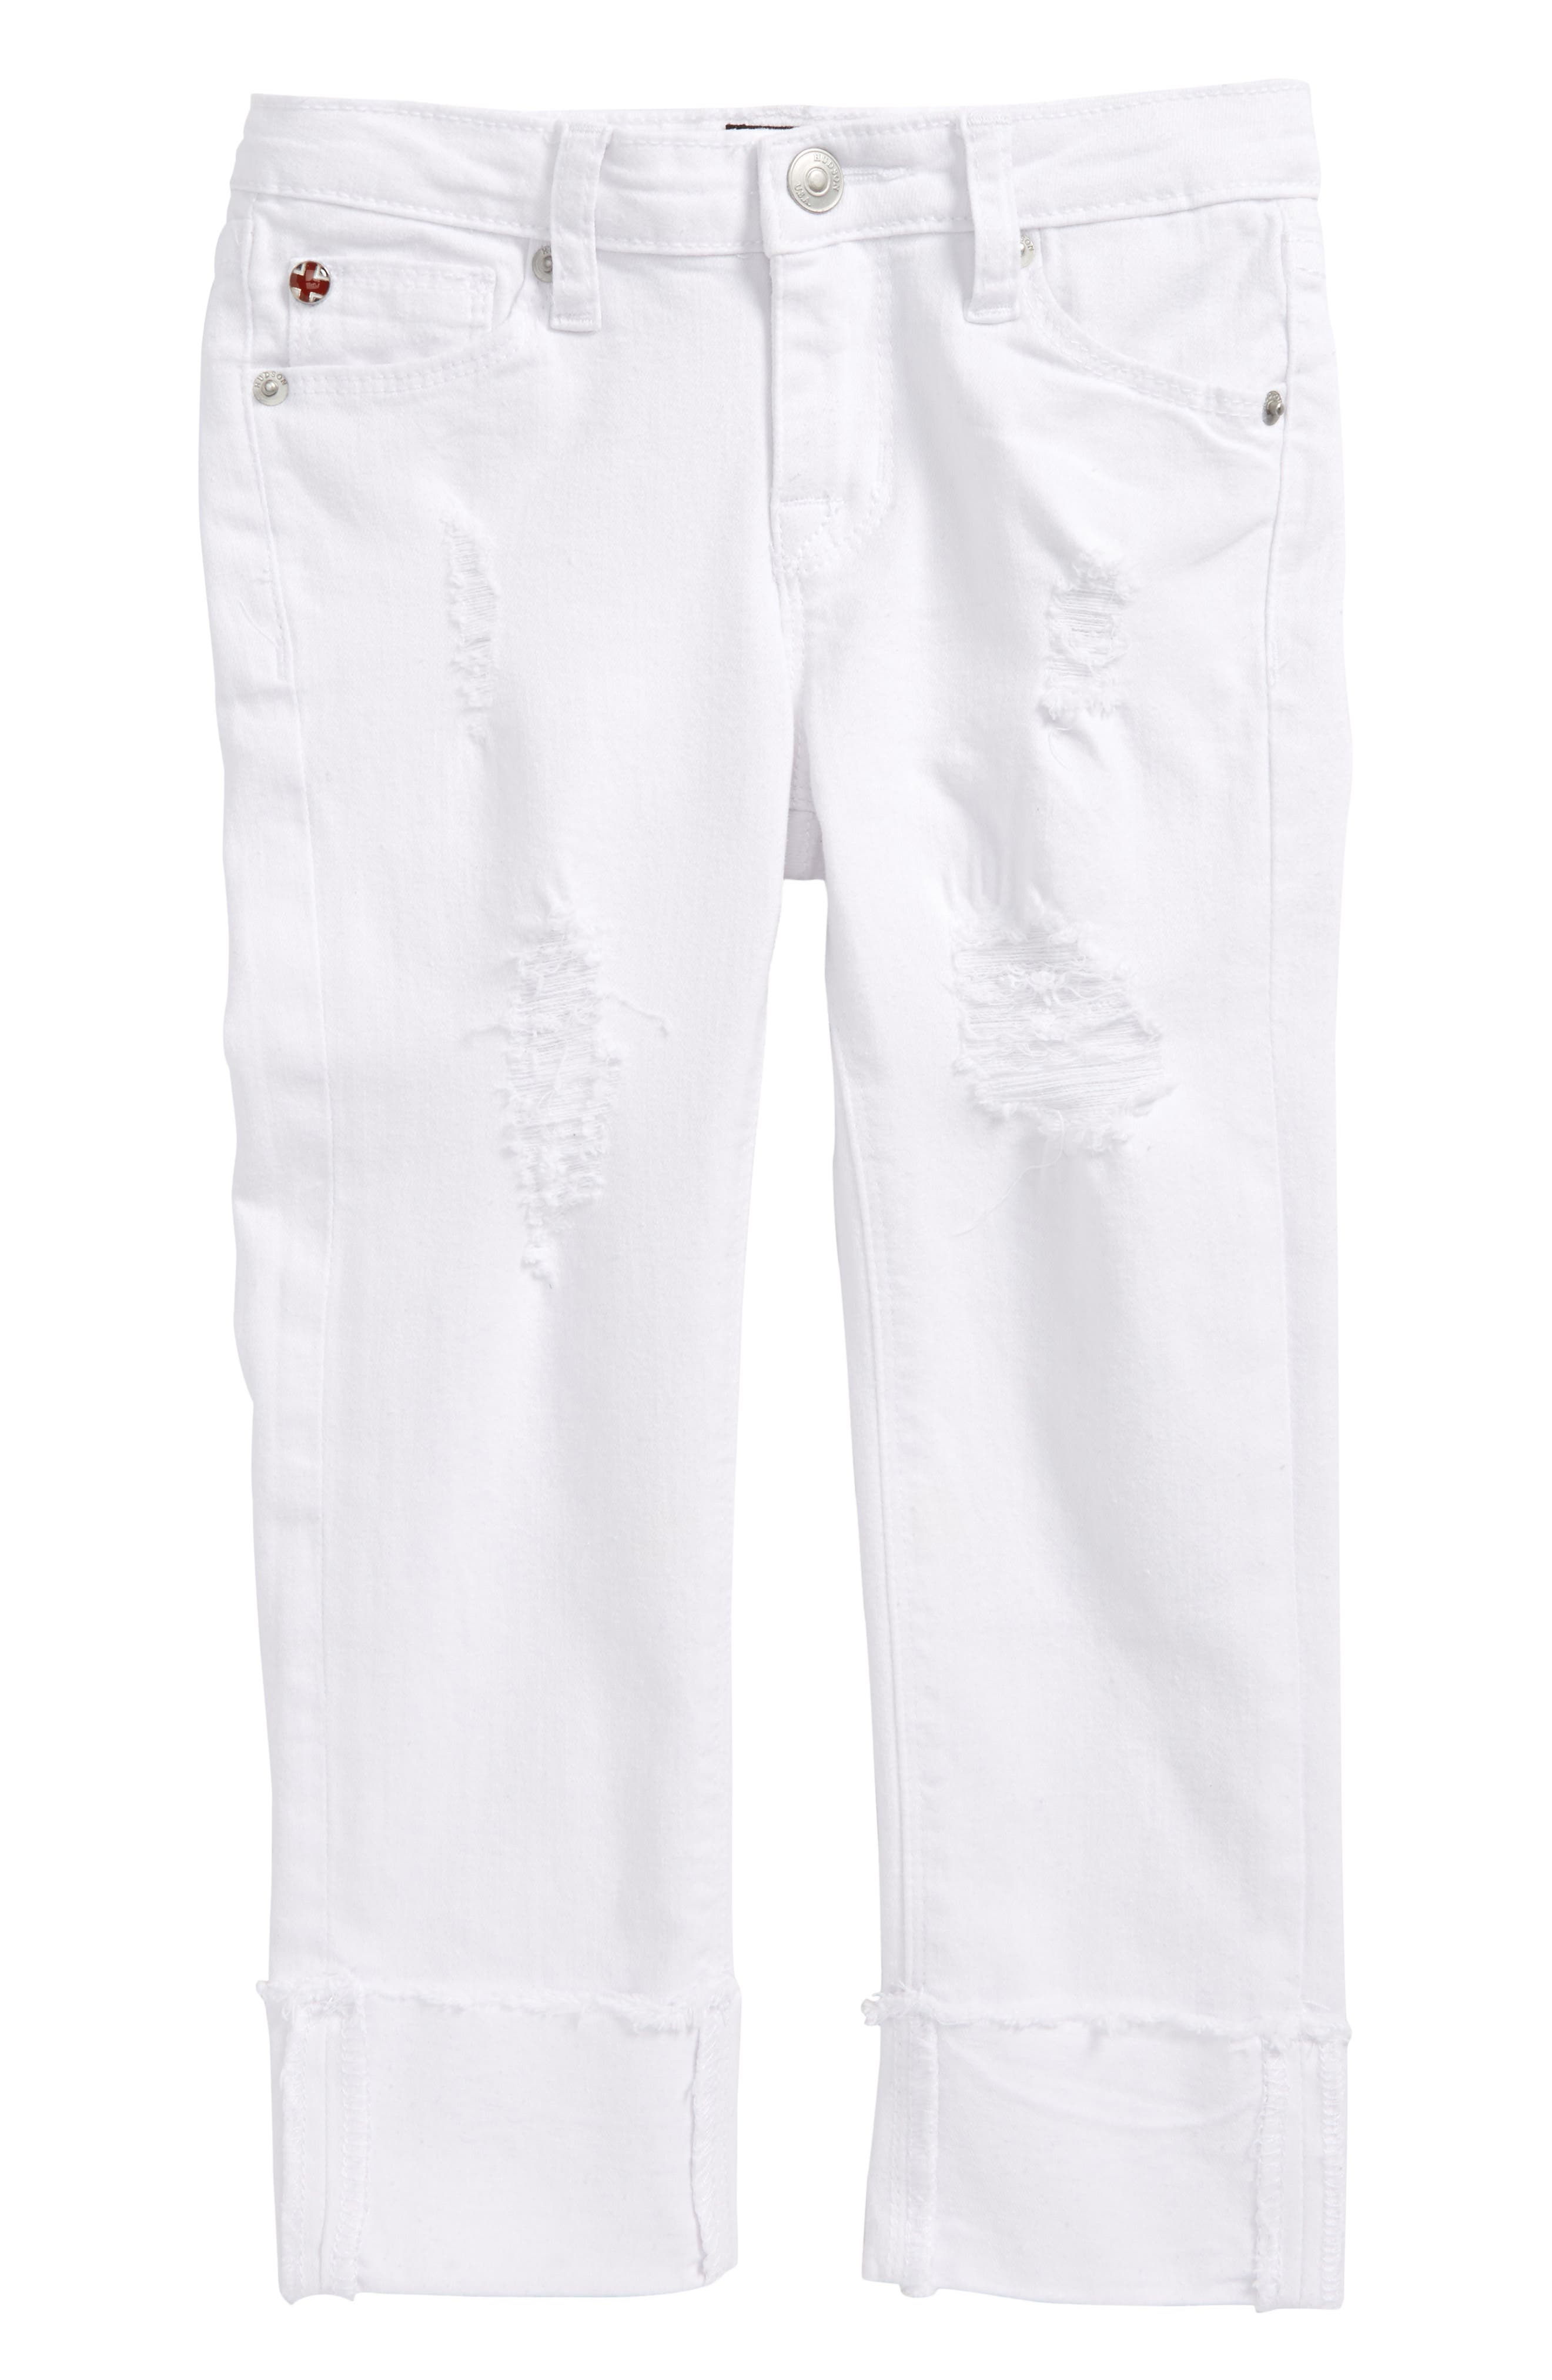 Hudson Kids Jessa Crop Skinny Jeans (Toddler Girls & Little Girls)